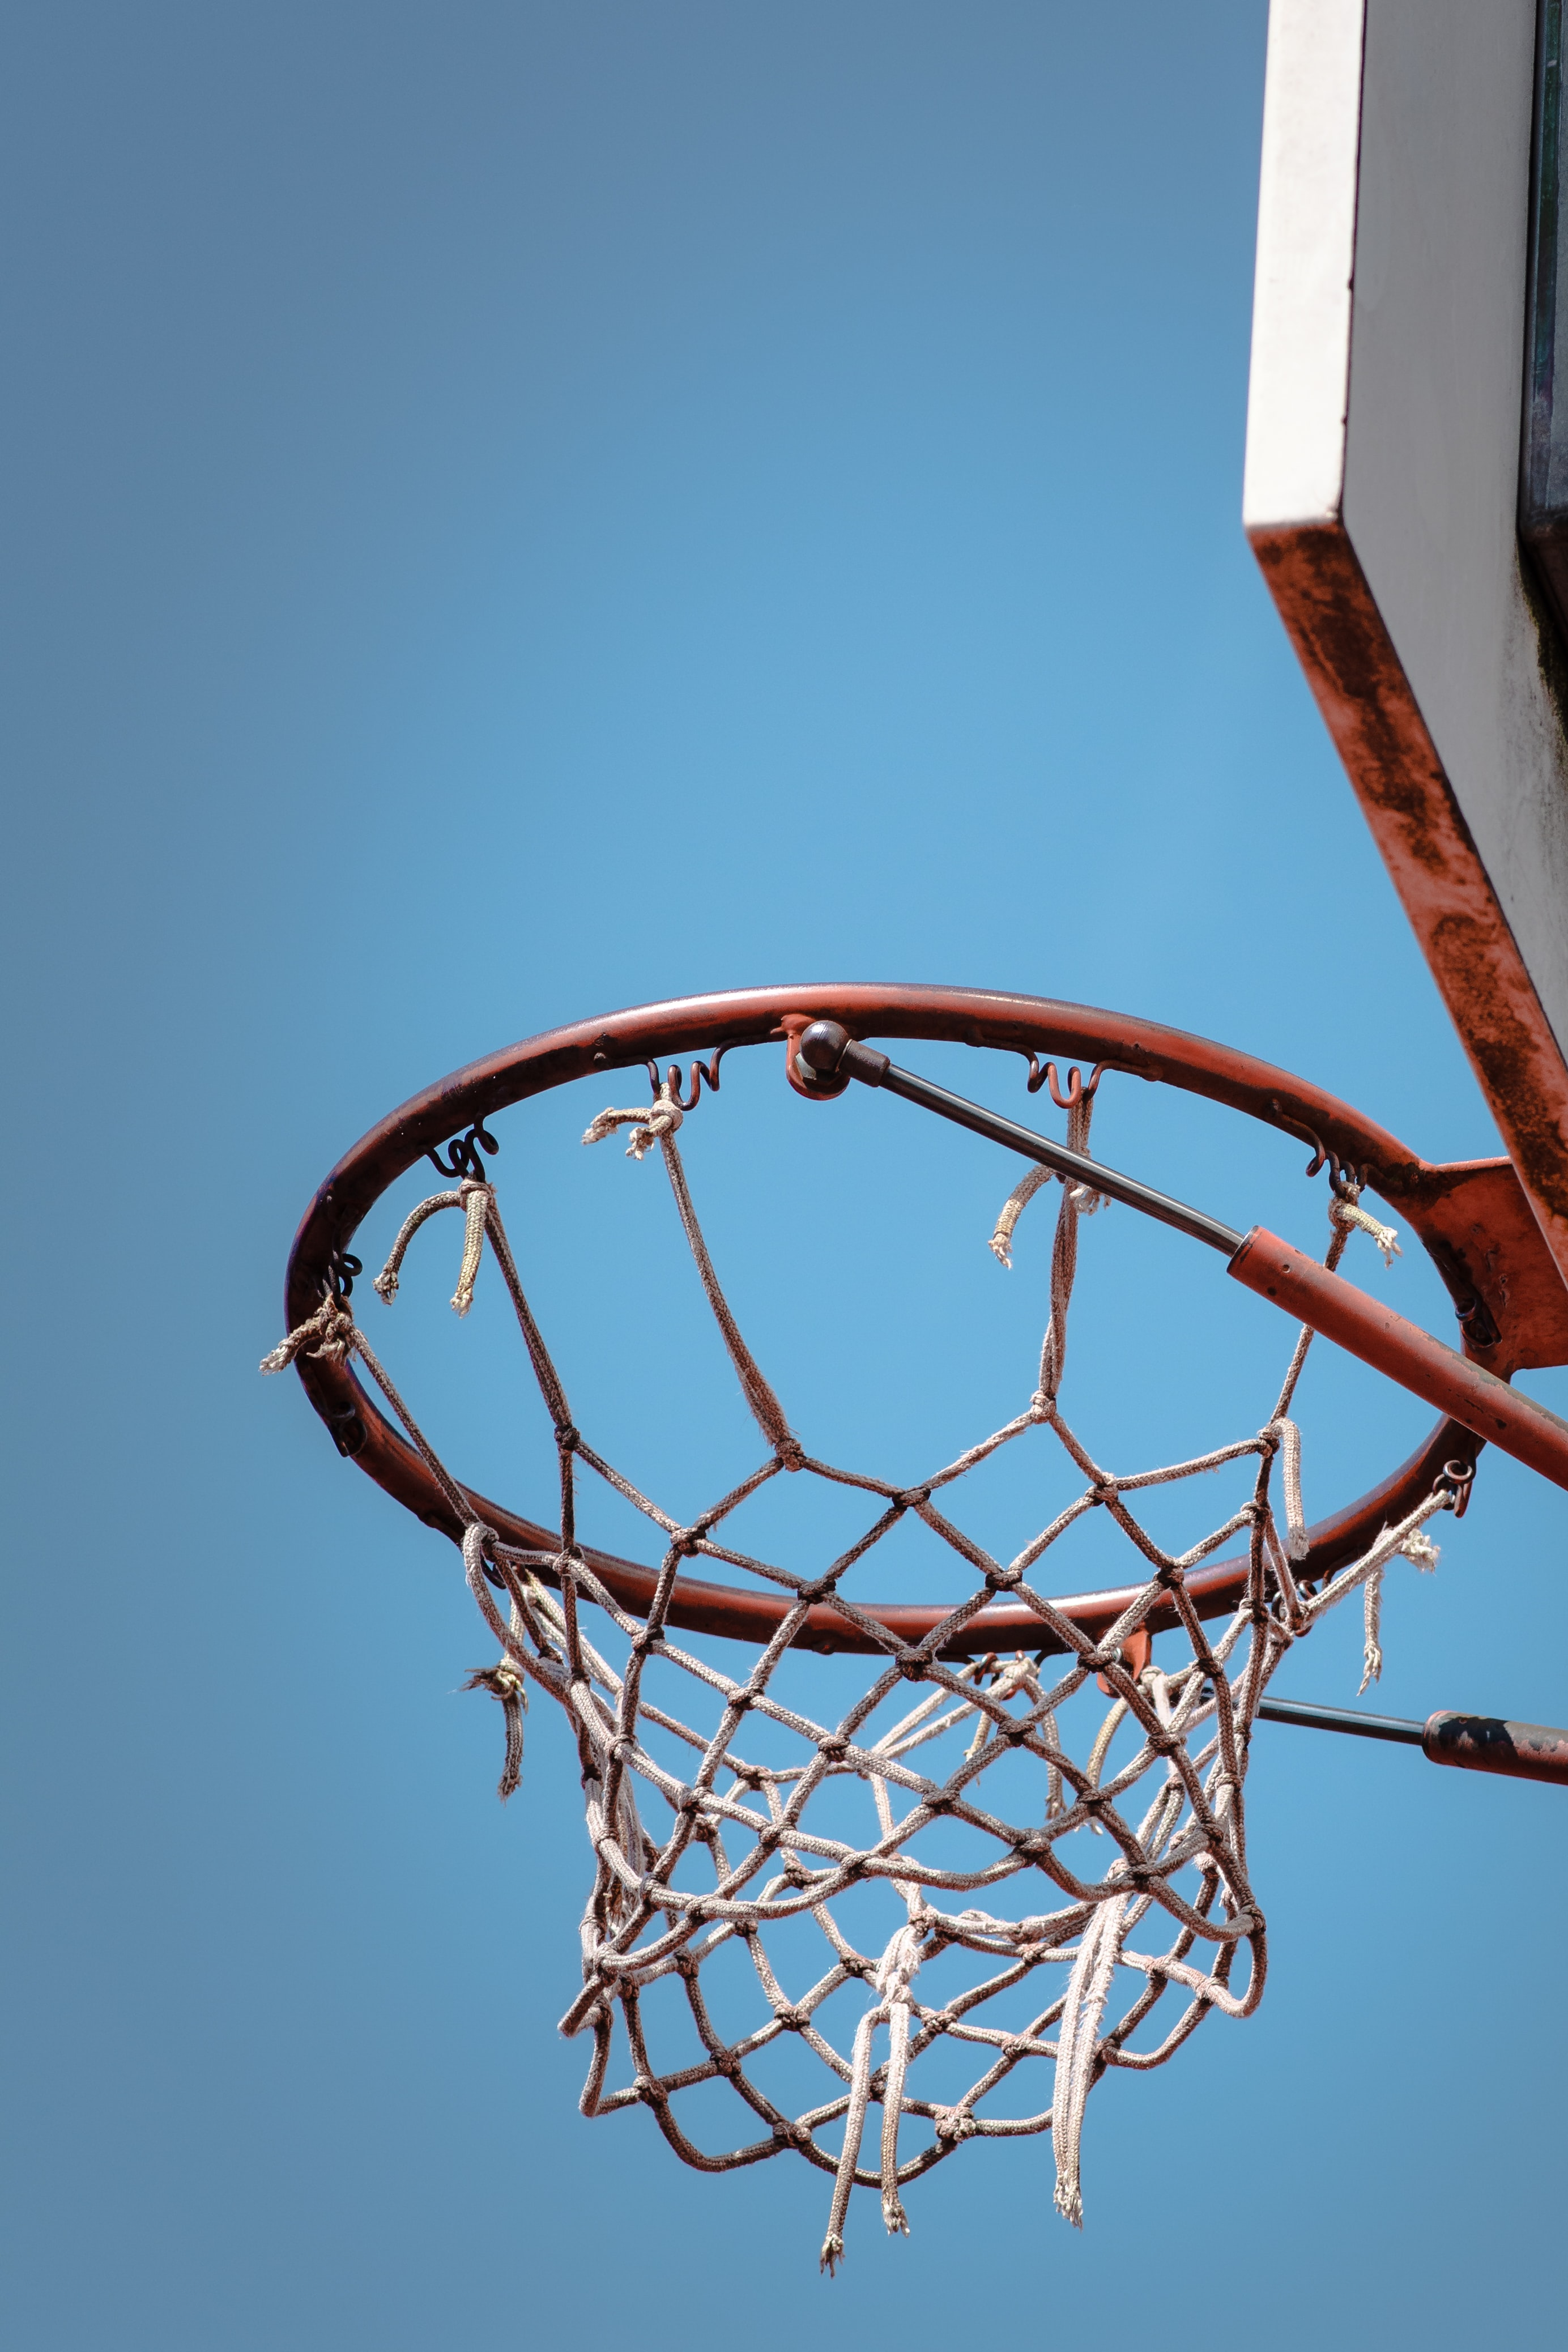 low angle photography of red and white basketball system